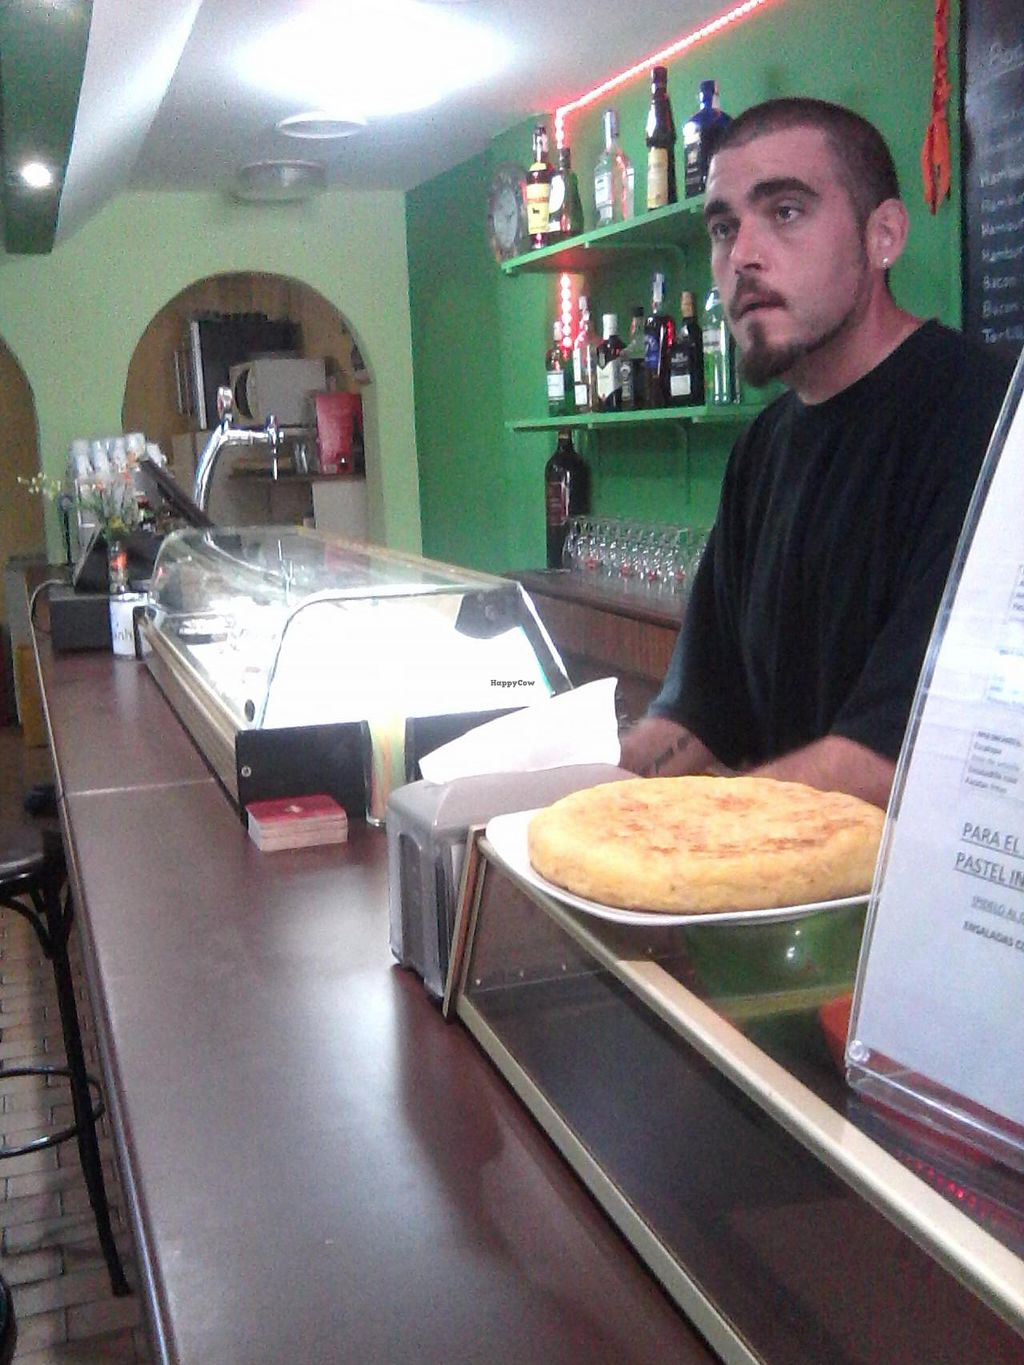 """Photo of CLOSED: Viva ZaTapa  by <a href=""""/members/profile/hecstork"""">hecstork</a> <br/>he knows how to cook a good tortilla de patatas without eggs <br/> September 6, 2014  - <a href='/contact/abuse/image/48549/79191'>Report</a>"""